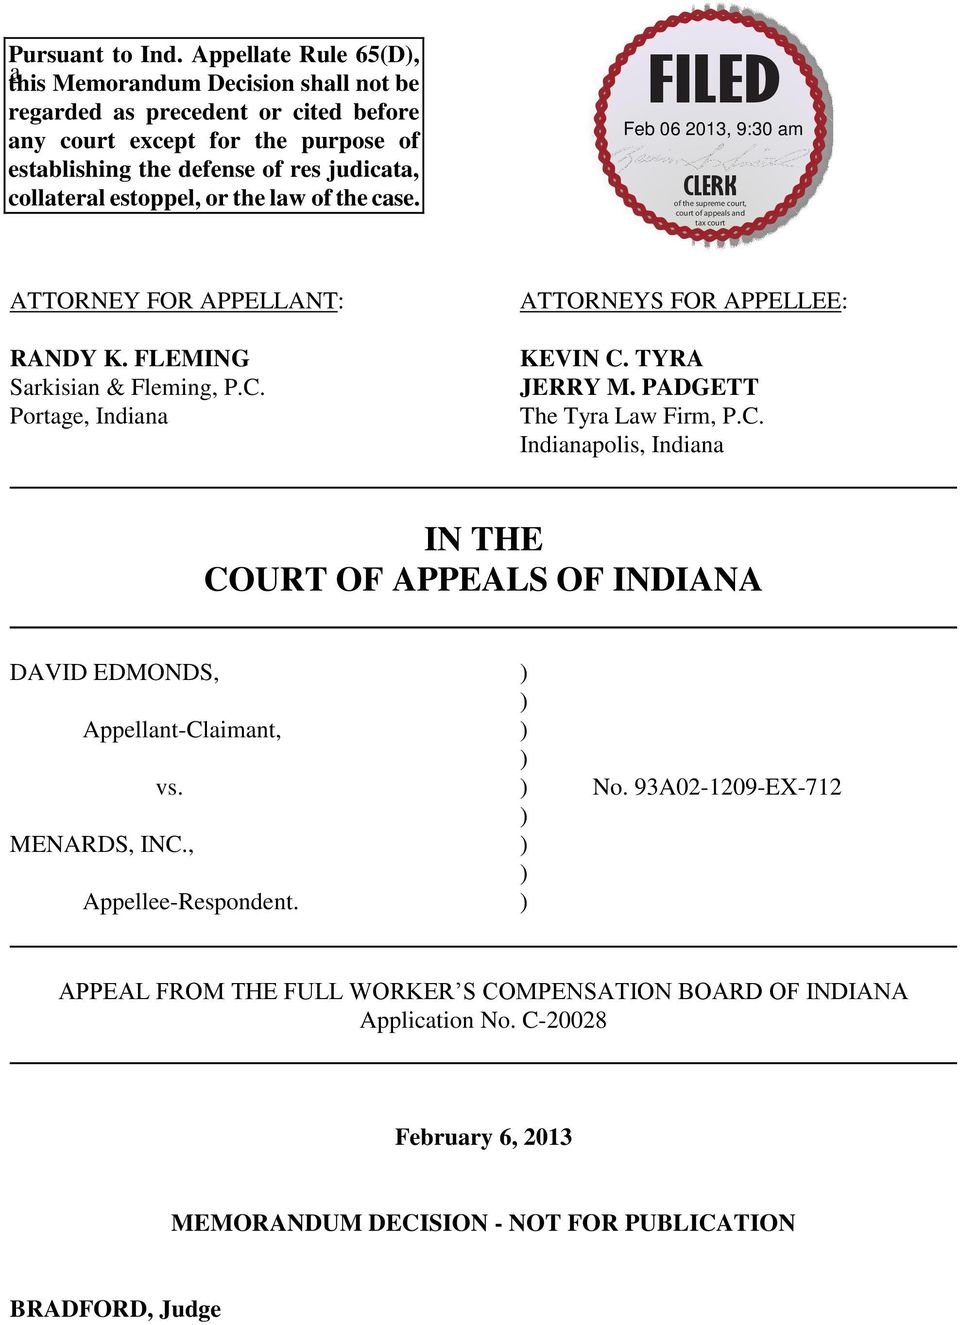 collateral estoppel, or the law of the case. ATTORNEY FOR APPELLANT: RANDY K. FLEMING Sarkisian & Fleming, P.C. Portage, Indiana ATTORNEYS FOR APPELLEE: KEVIN C. TYRA JERRY M.